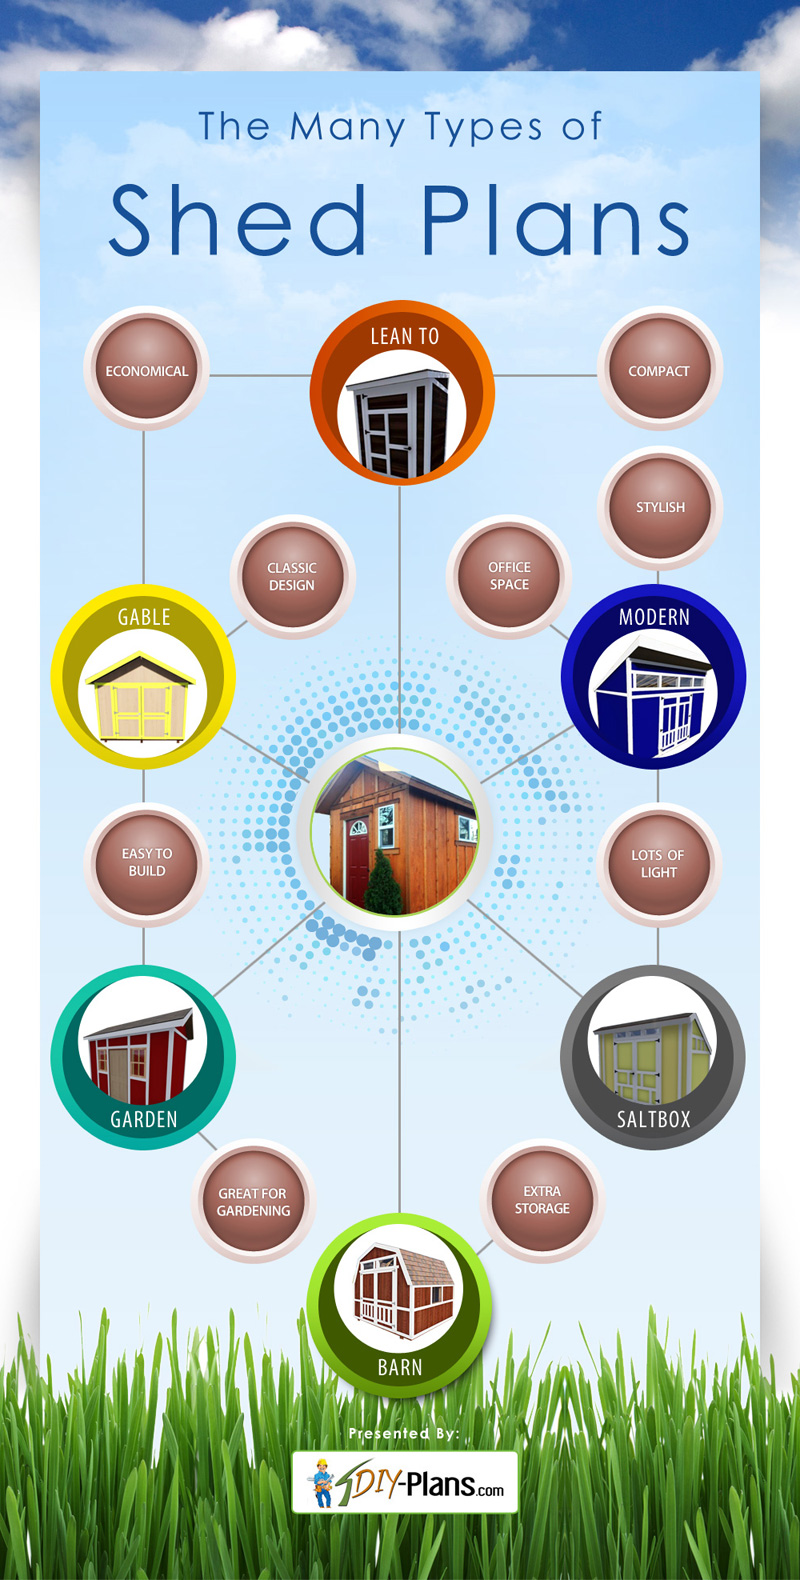 shed types infographic